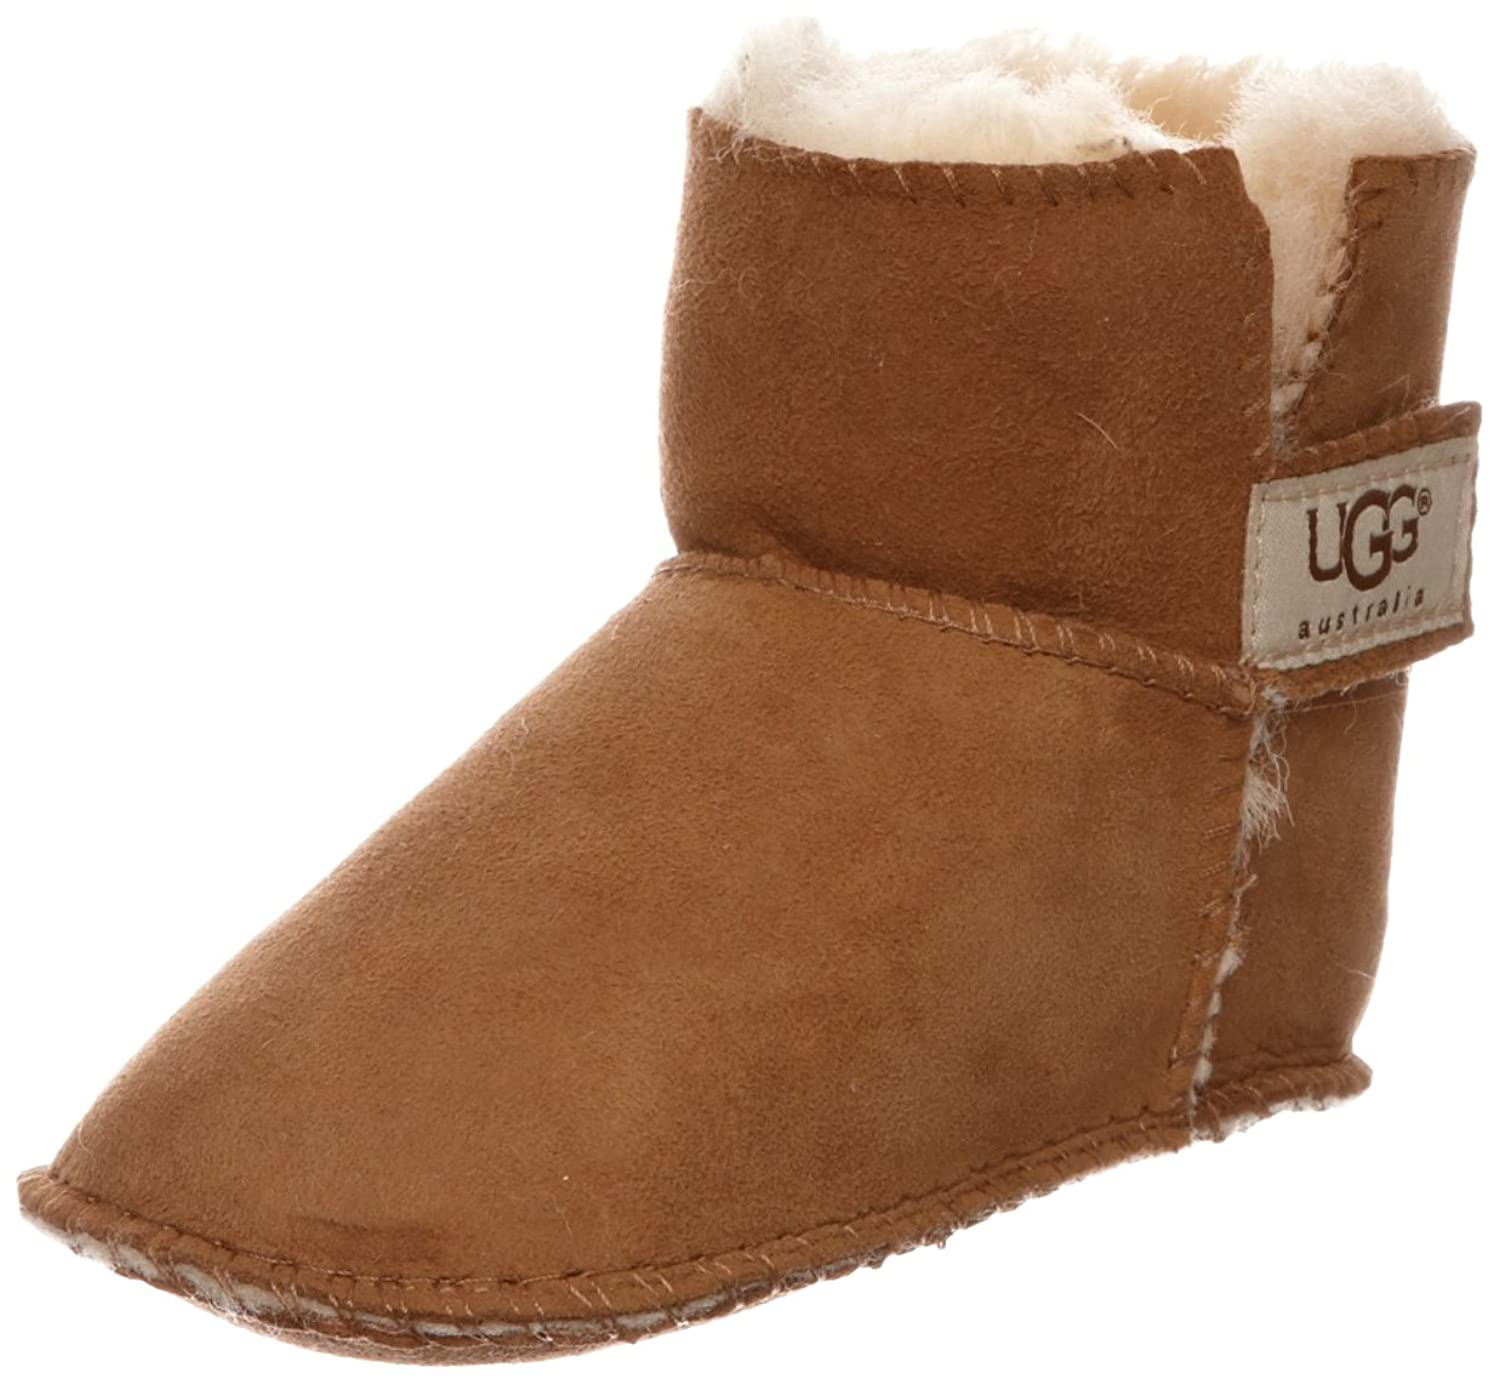 difference between real and fake ugg boots